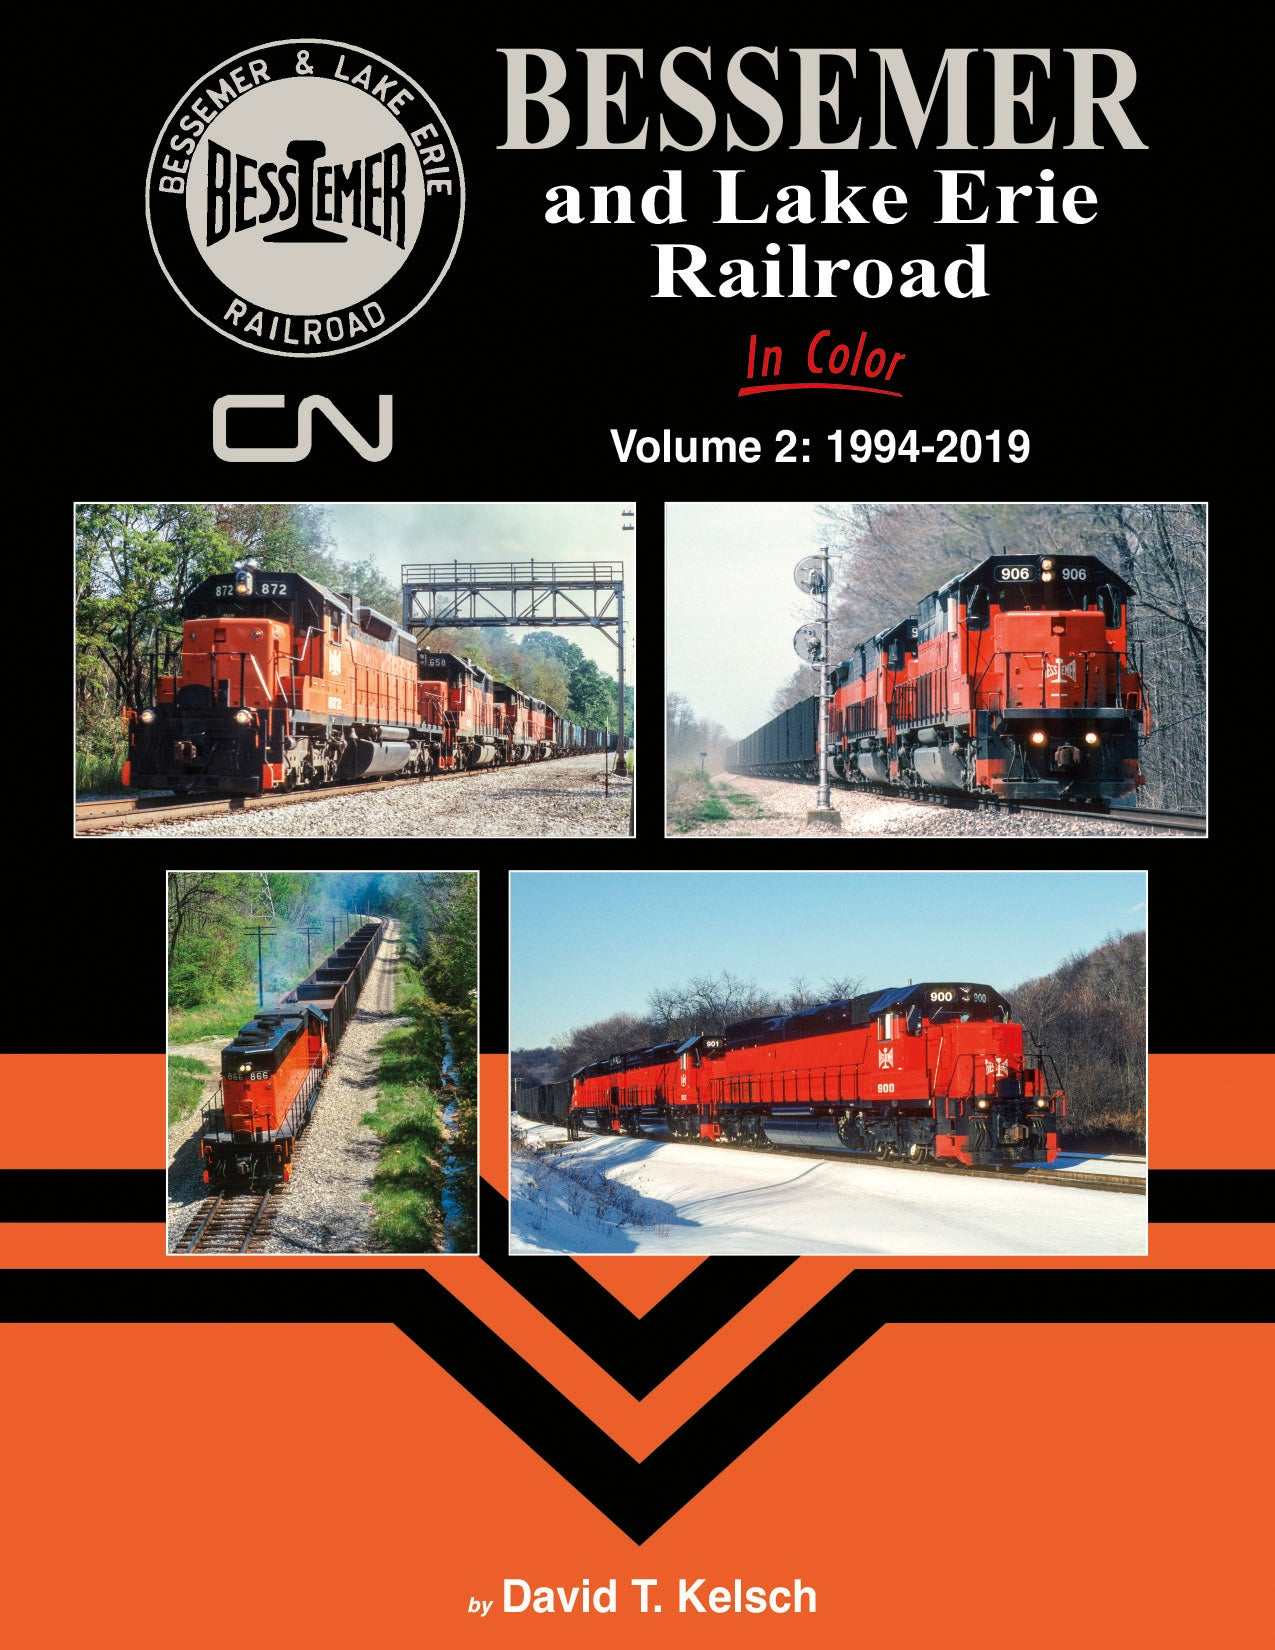 Bessemer and Lake Erie Railroad In Color Volume 2: 1994-2019